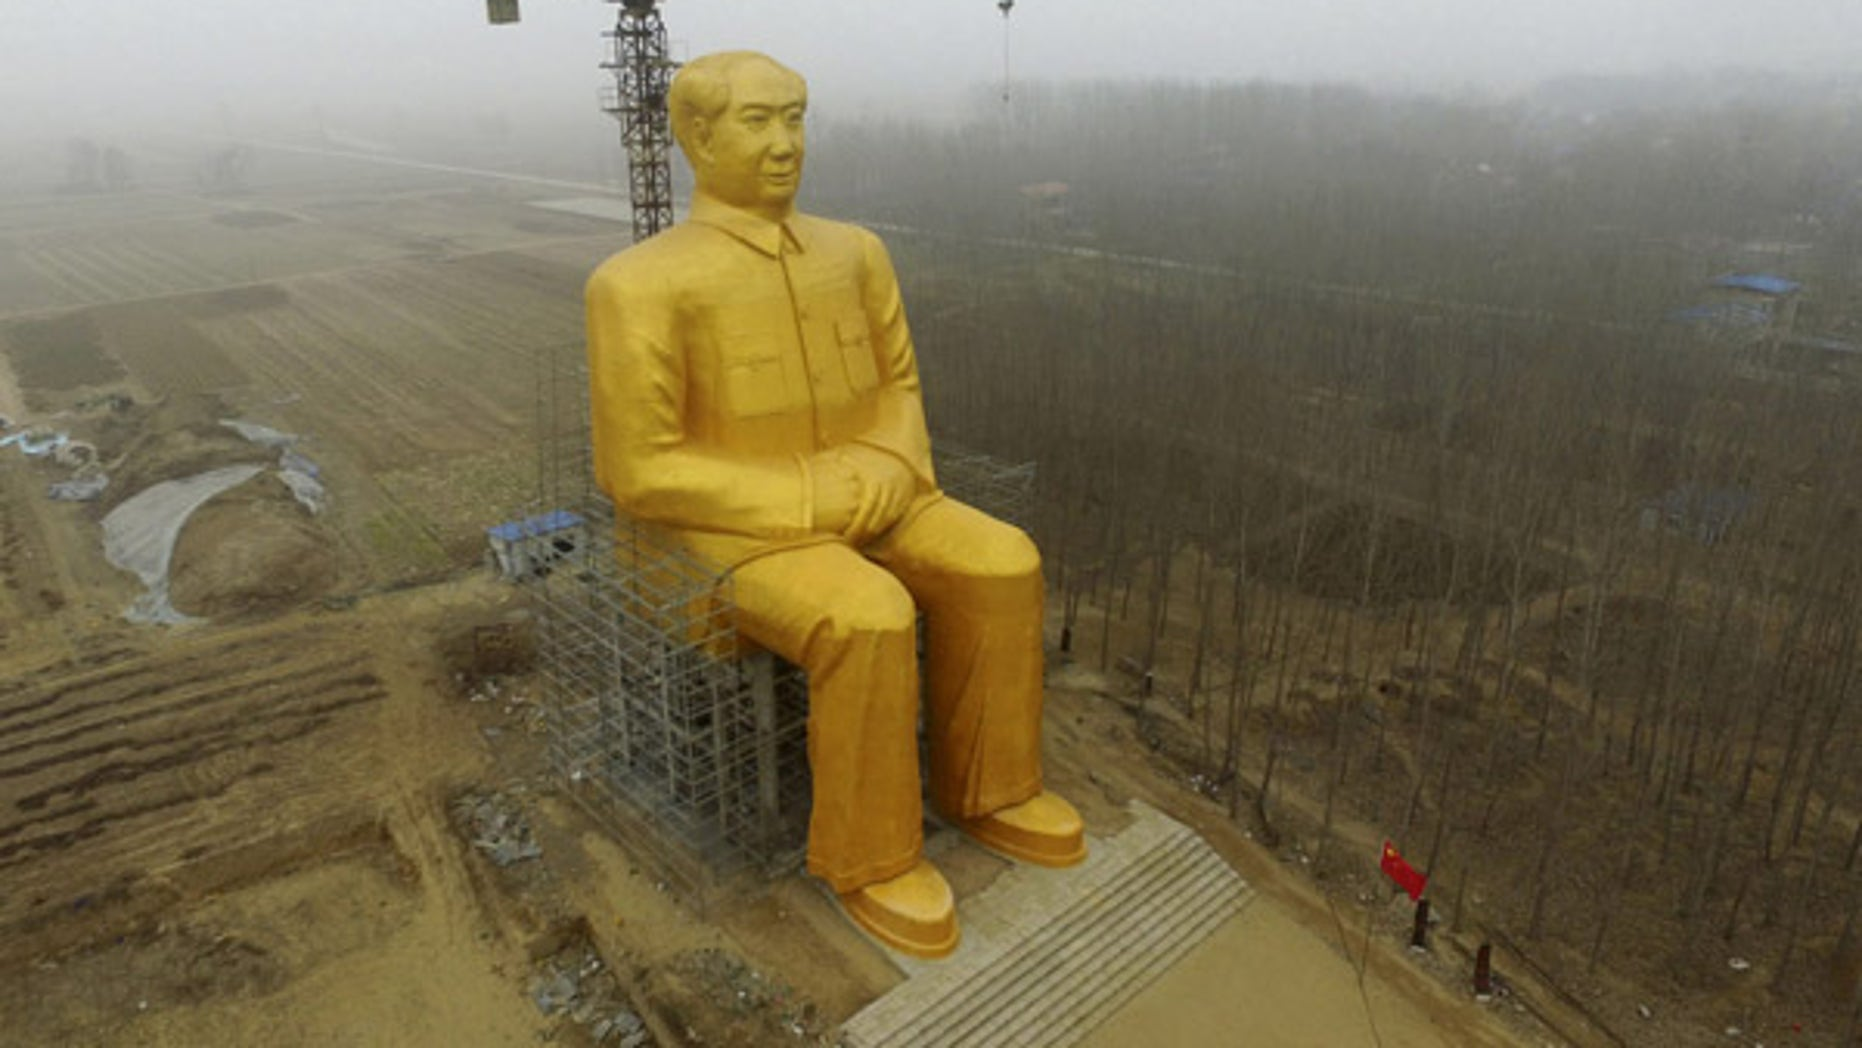 Jan. 4, 2016: A 120-foot tall gold-colored statue of former Chinese leader Mao Zedong is surrounded by farmland in Tongxu County in central China's Henan province. According to Chinese state media, businessmen and local villagers contributed nearly $460,000 to build the cement statue.